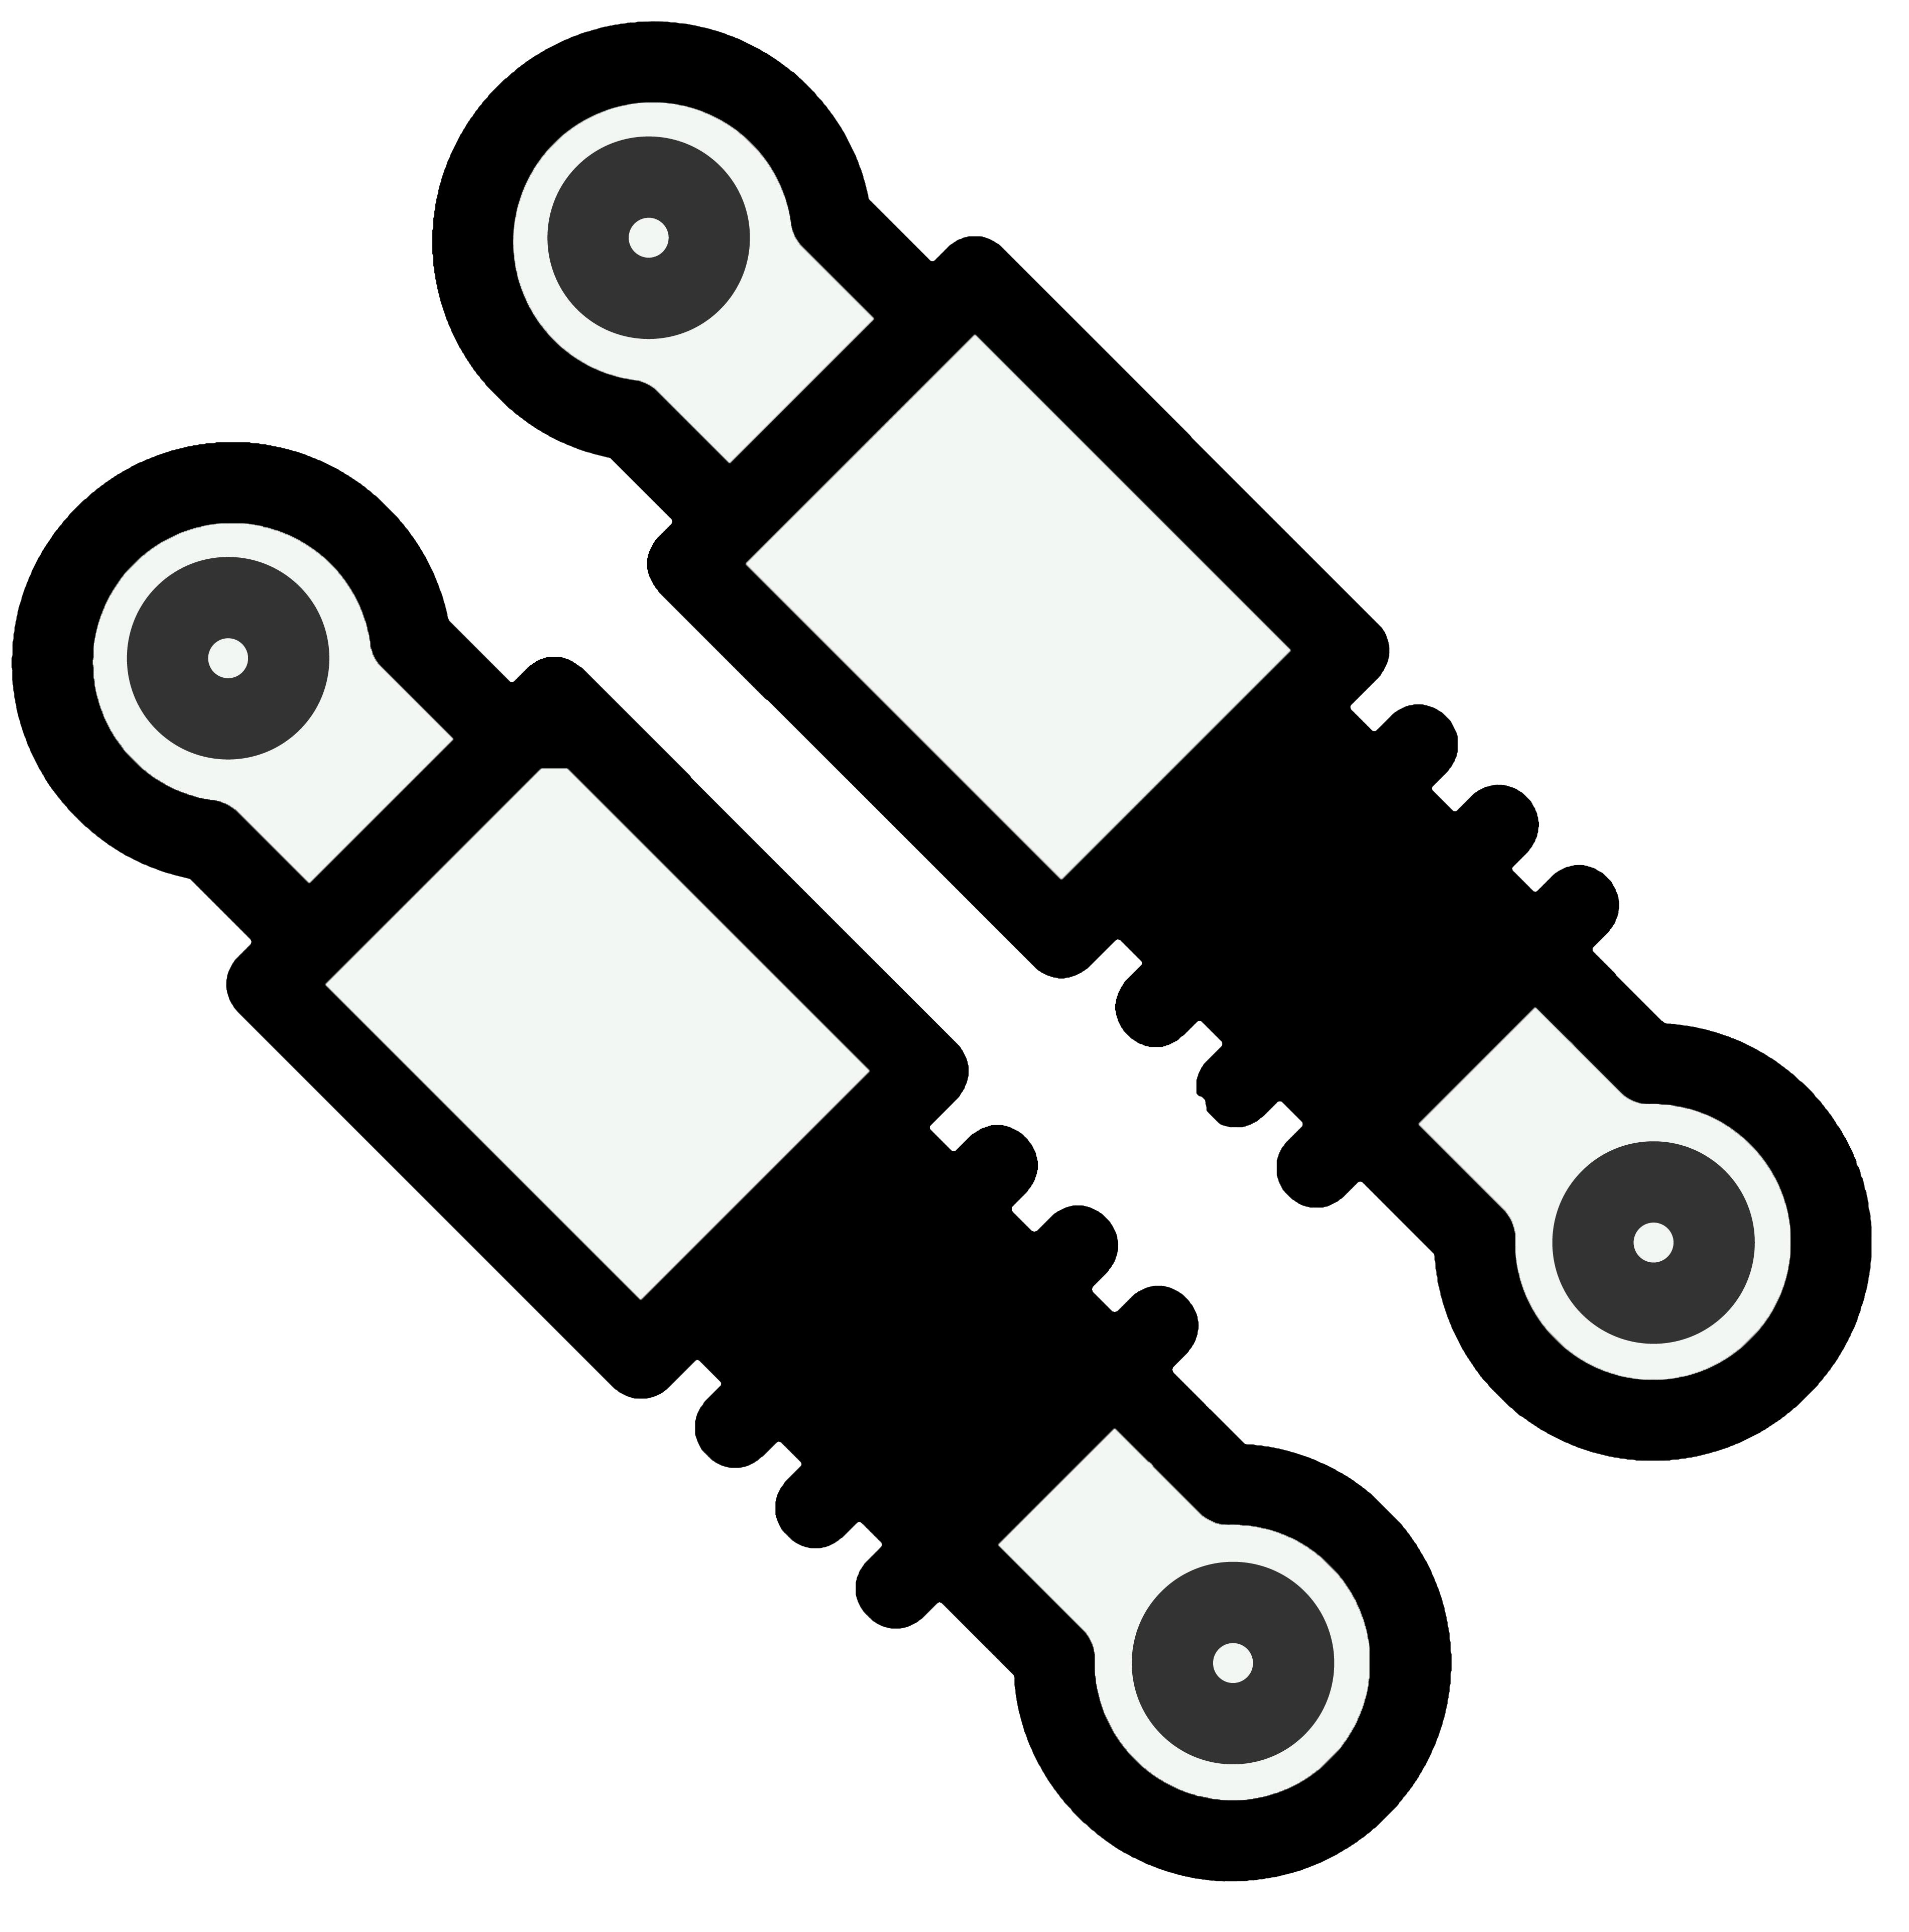 https://www.corrbrothers.co.uk/wp-content/uploads/2018/09/parts-icon1.png